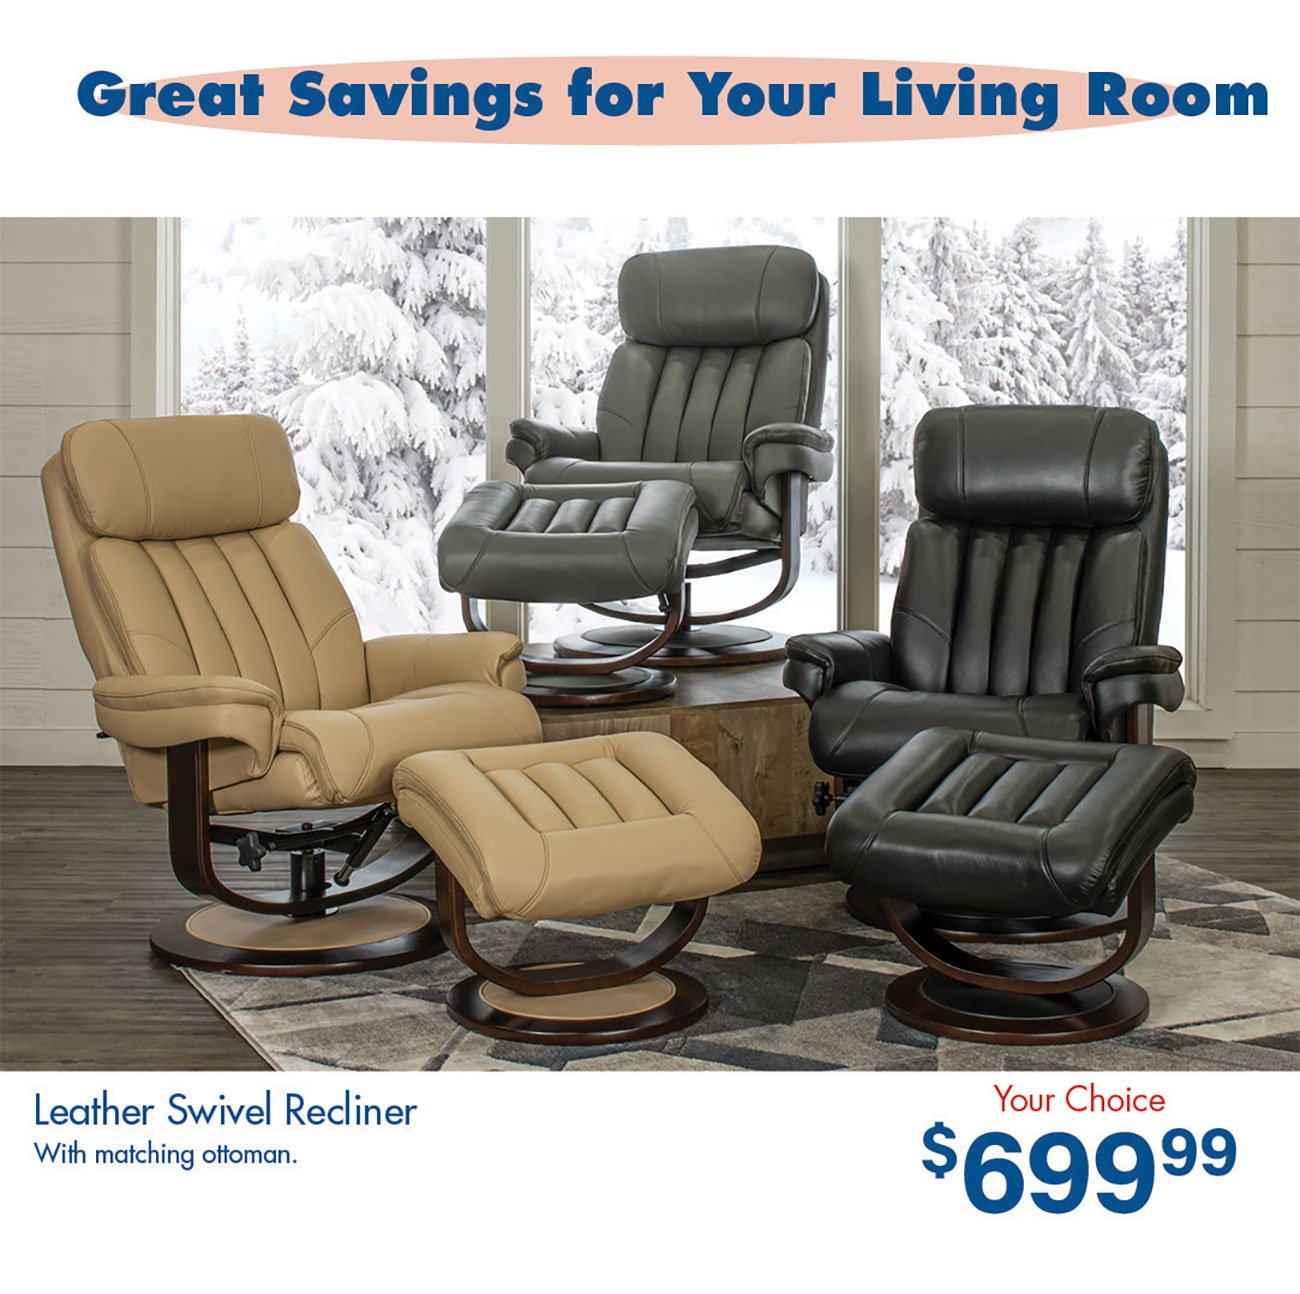 Leather-Swivel-Recliners-Your-Choice